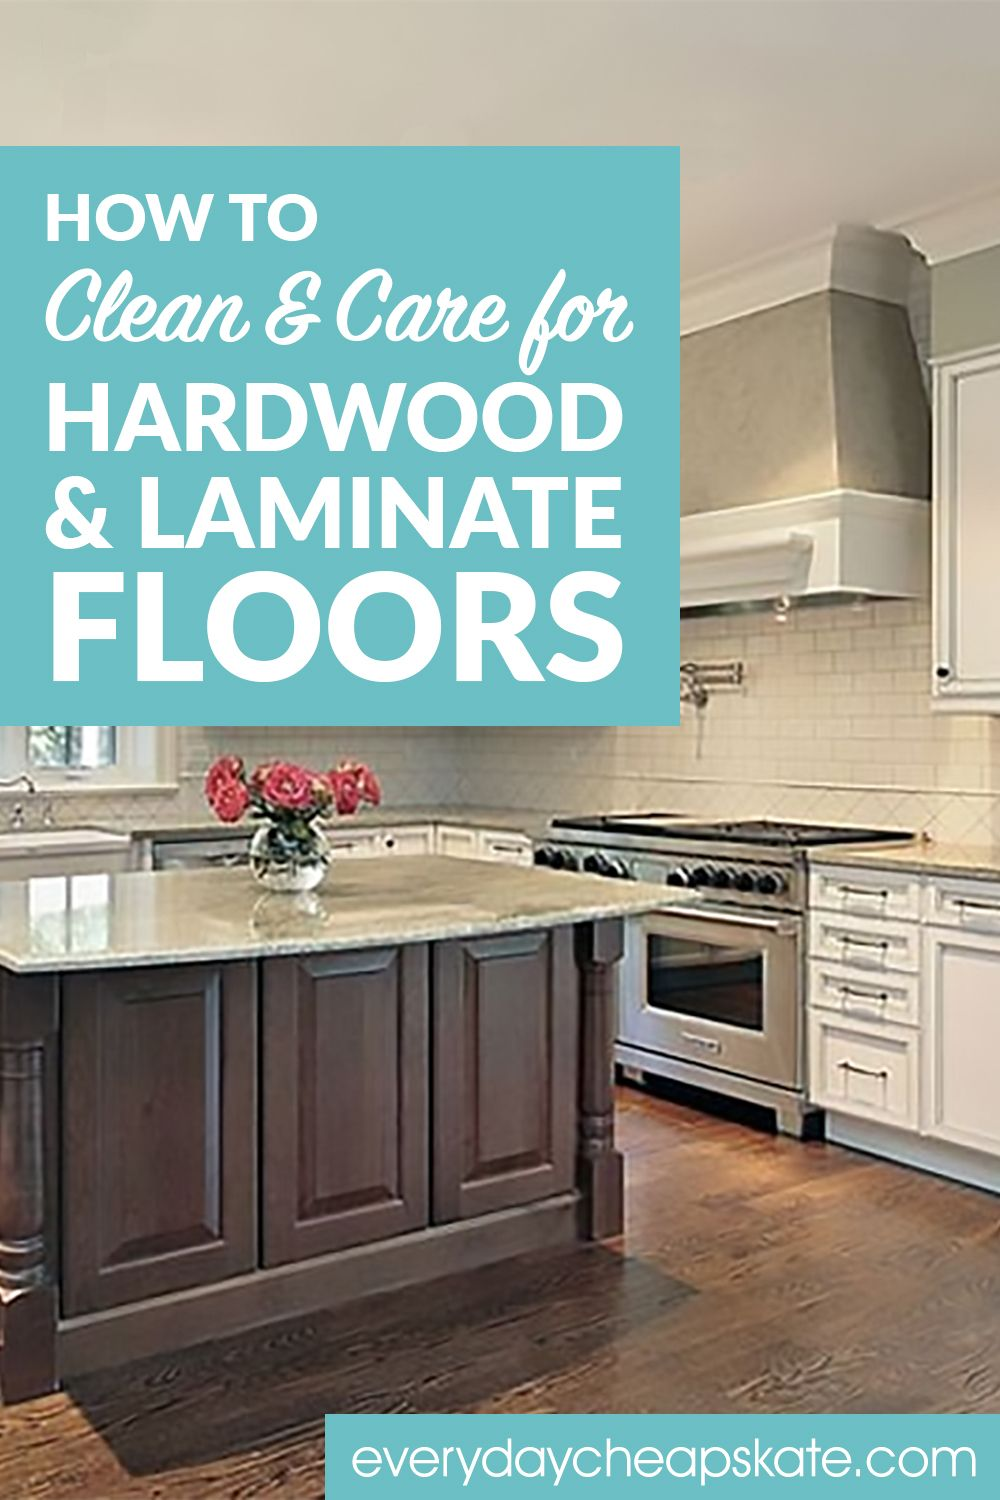 How to Clean and Care for Hardwood and Laminate Floors